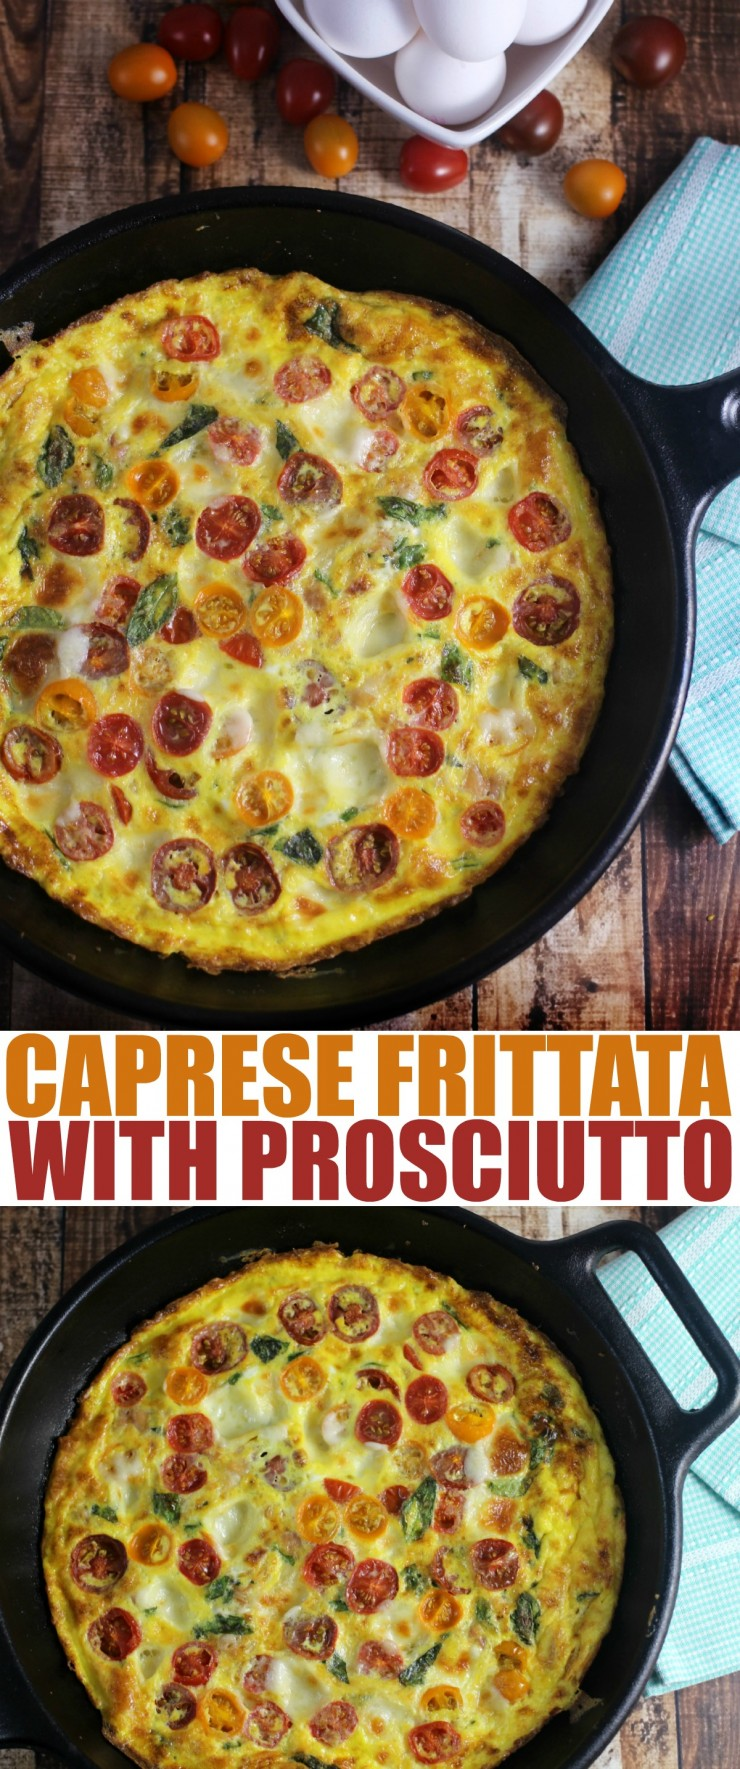 This Caprese Frittata with Prosciutto is perfect for breakfast or even a family dinner served with salad. It's full of bursts of tomato & creamy cheese.